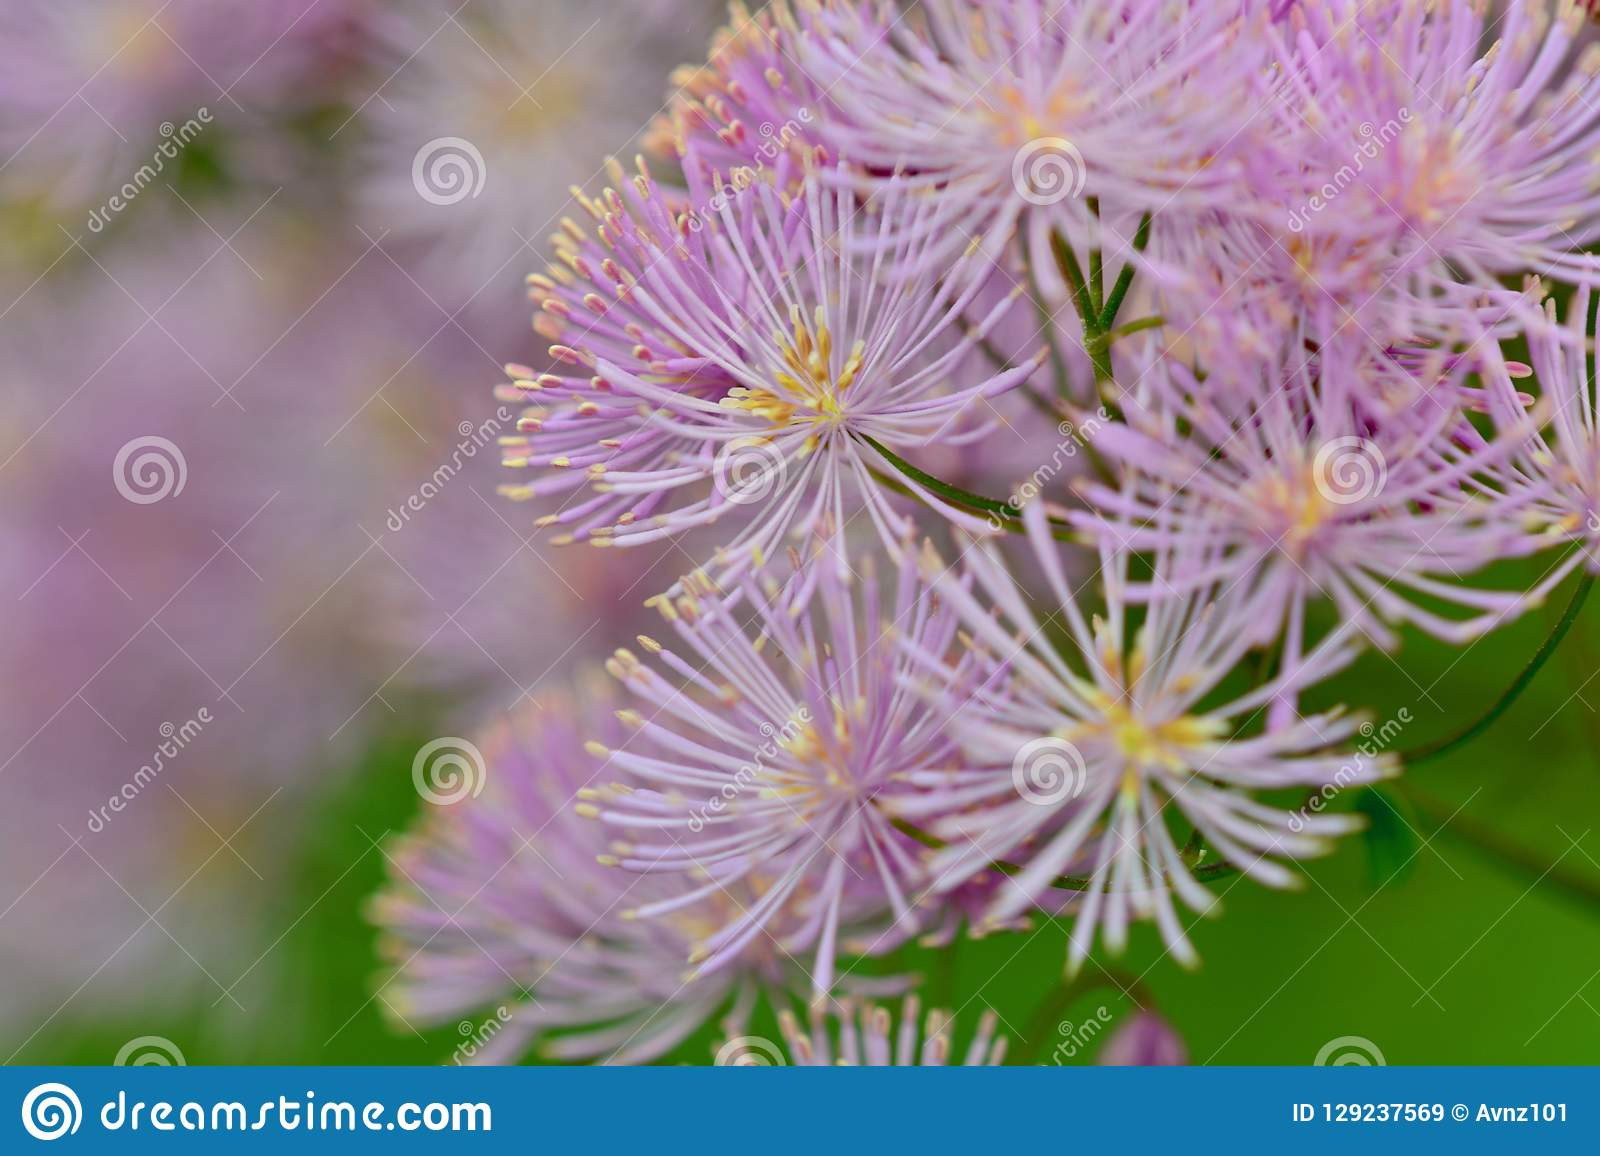 Close up photo of pink flower, resembling fireworks